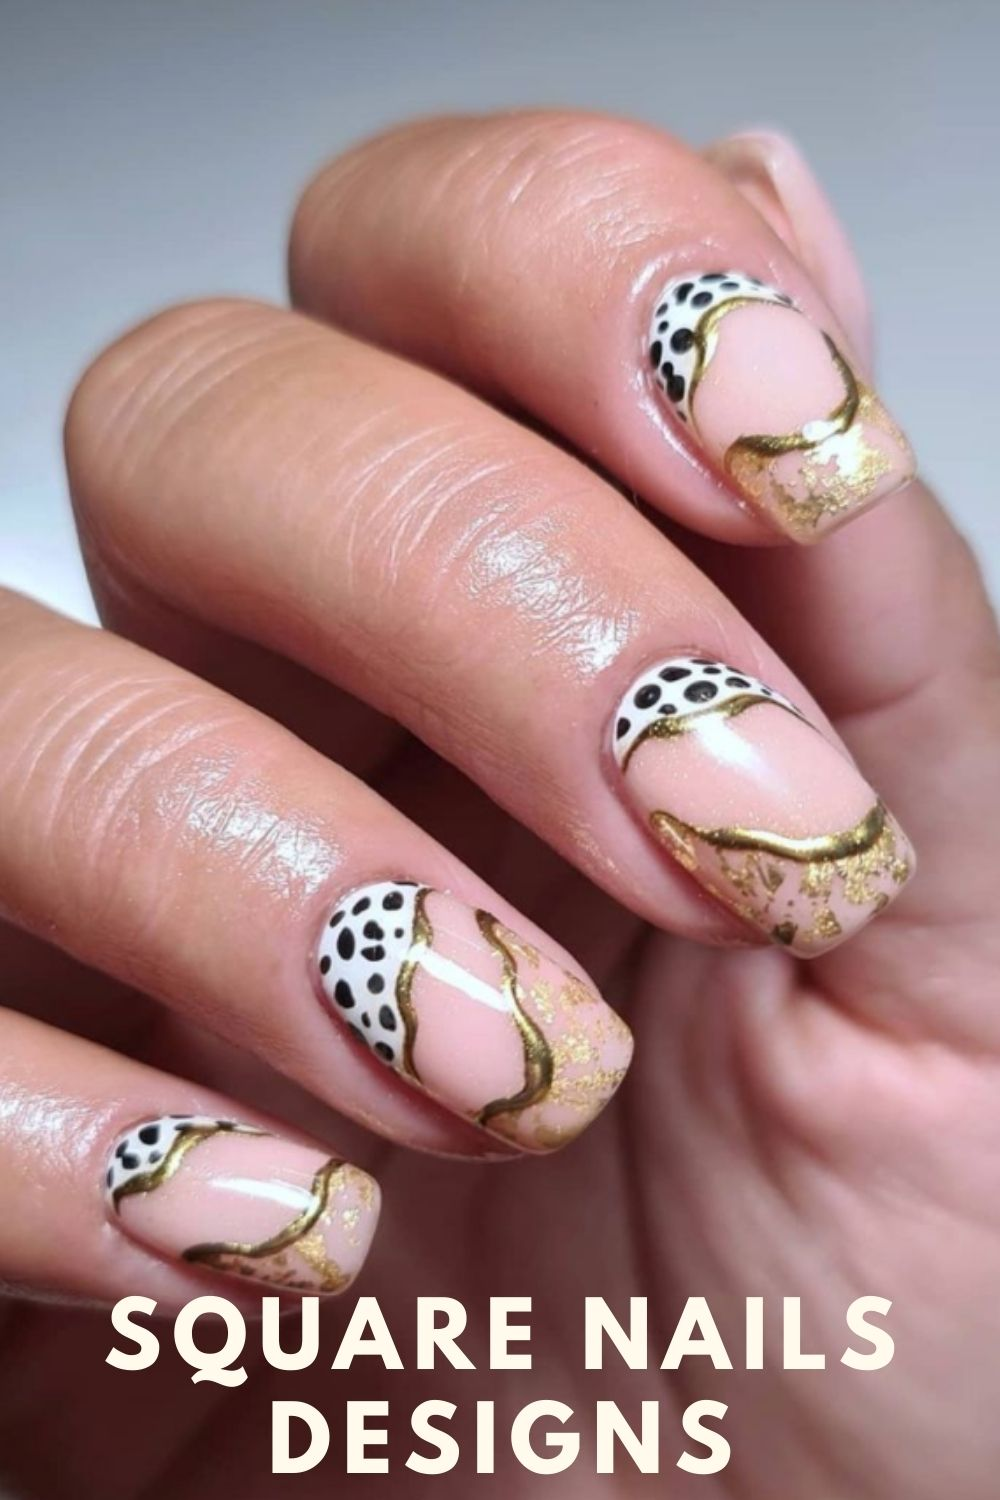 Gold and glitter square nails